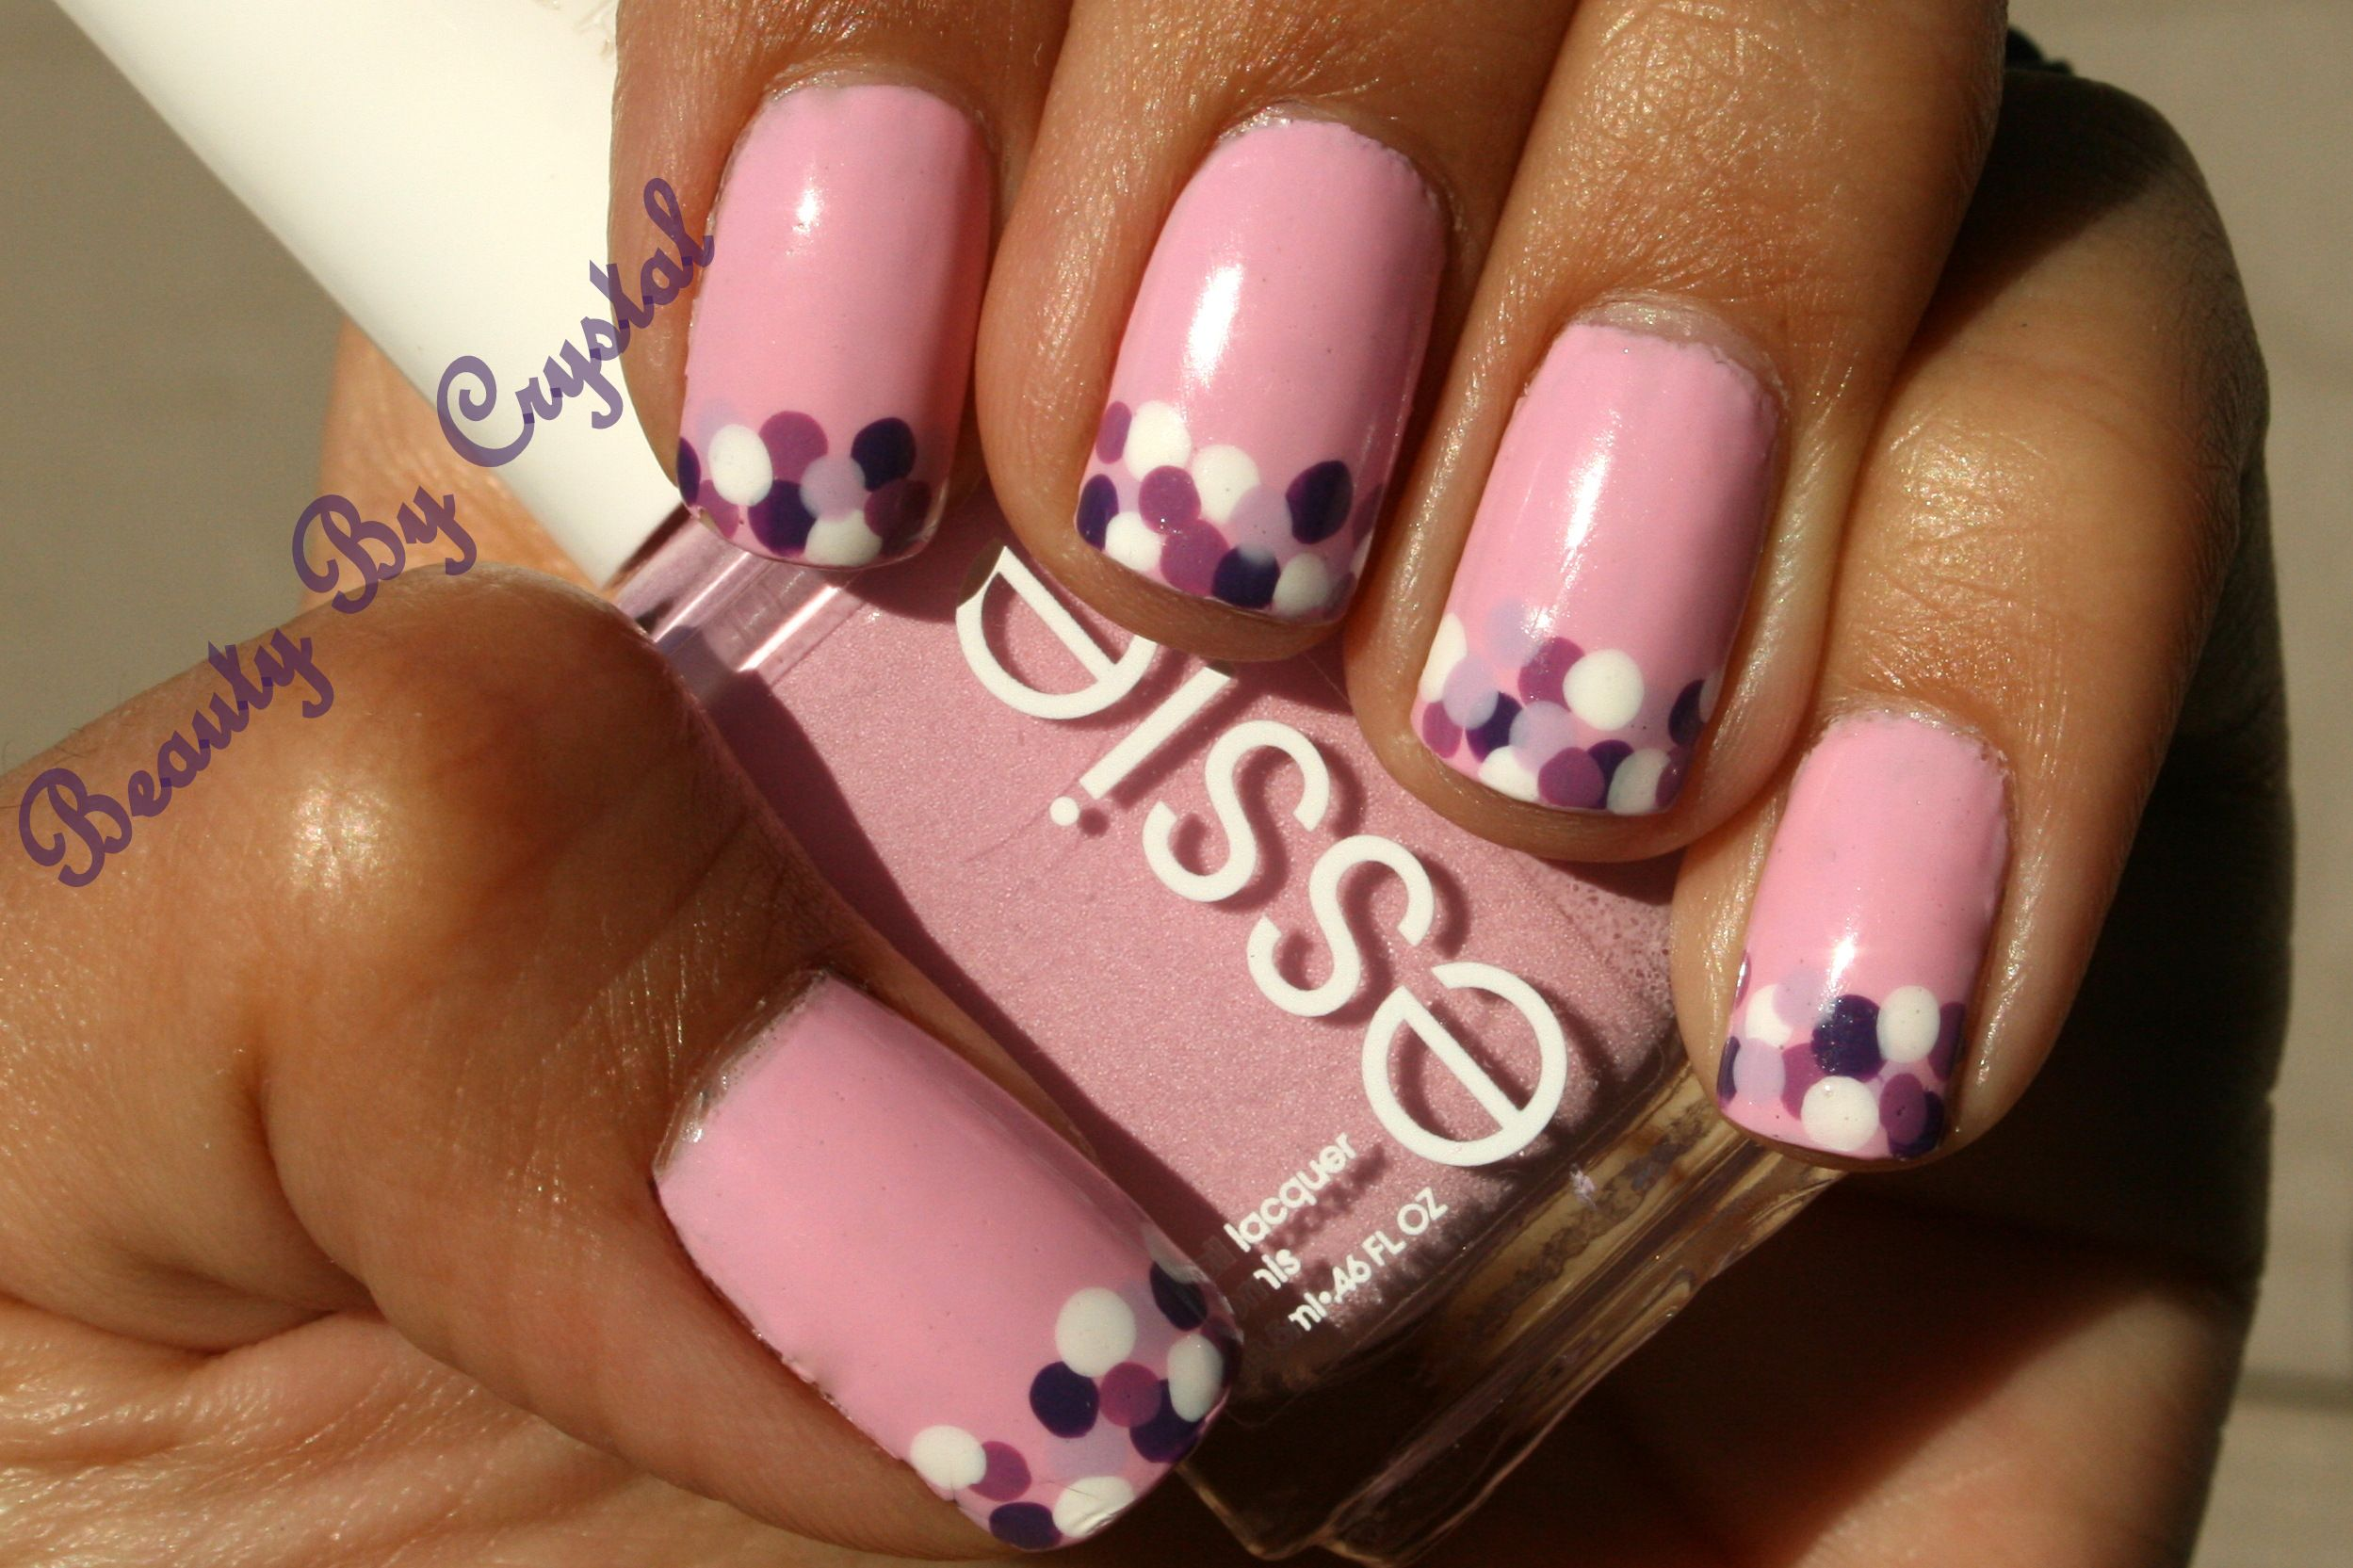 Essie French Affair Nail Polish w/ Dot Tips | My Nails! | Pinterest ...